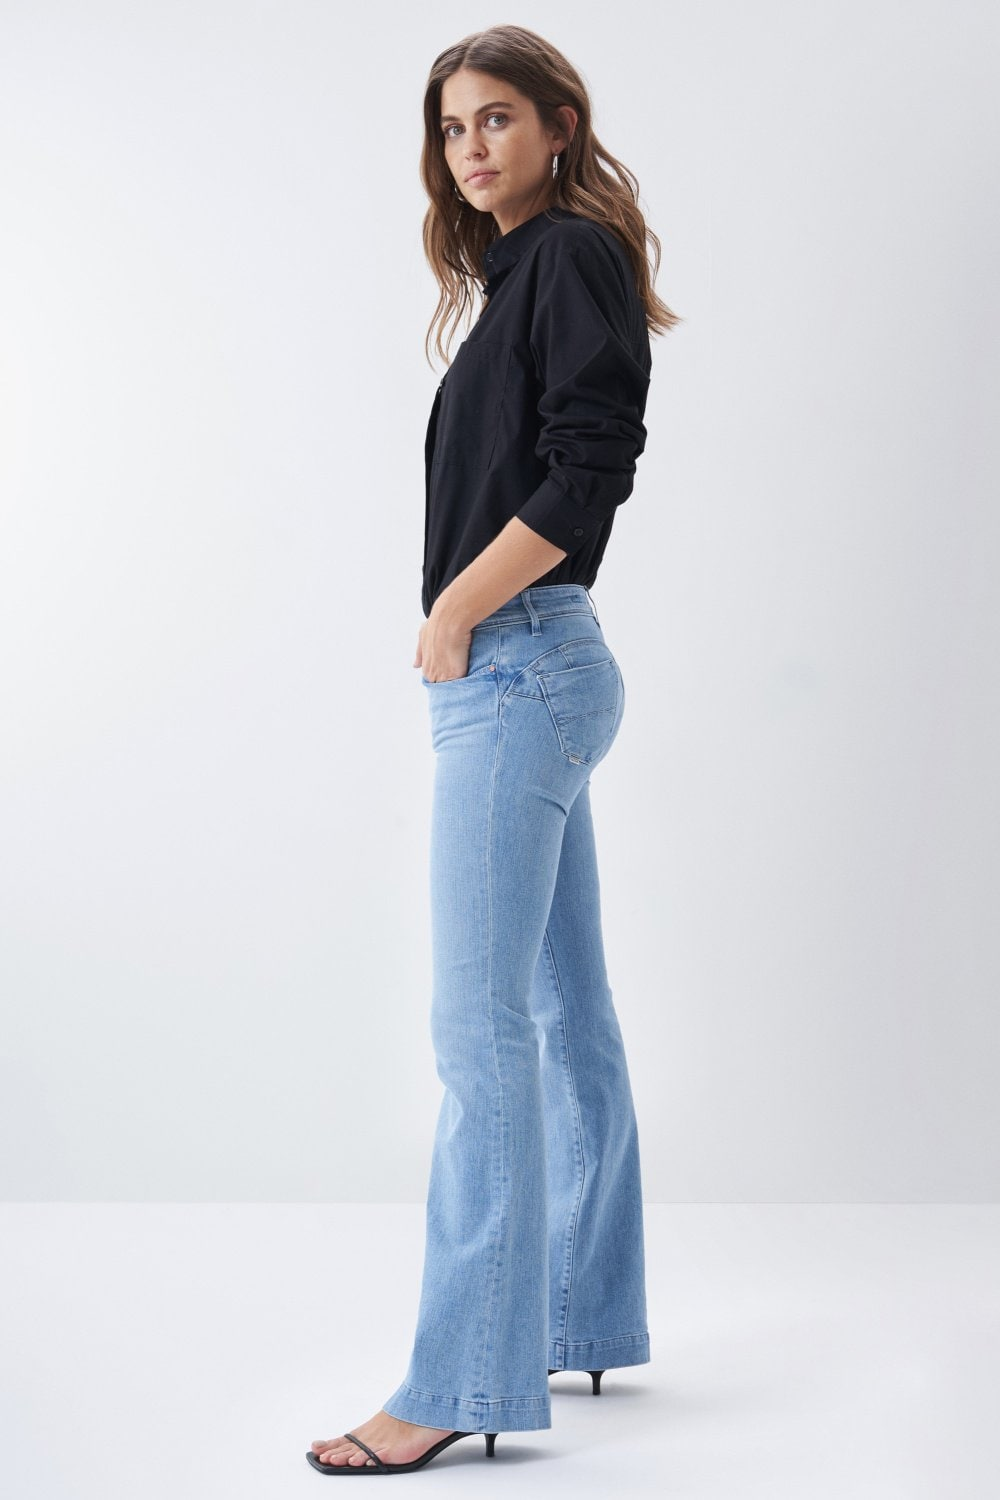 Push Up Wonder flare jeans - Salsa